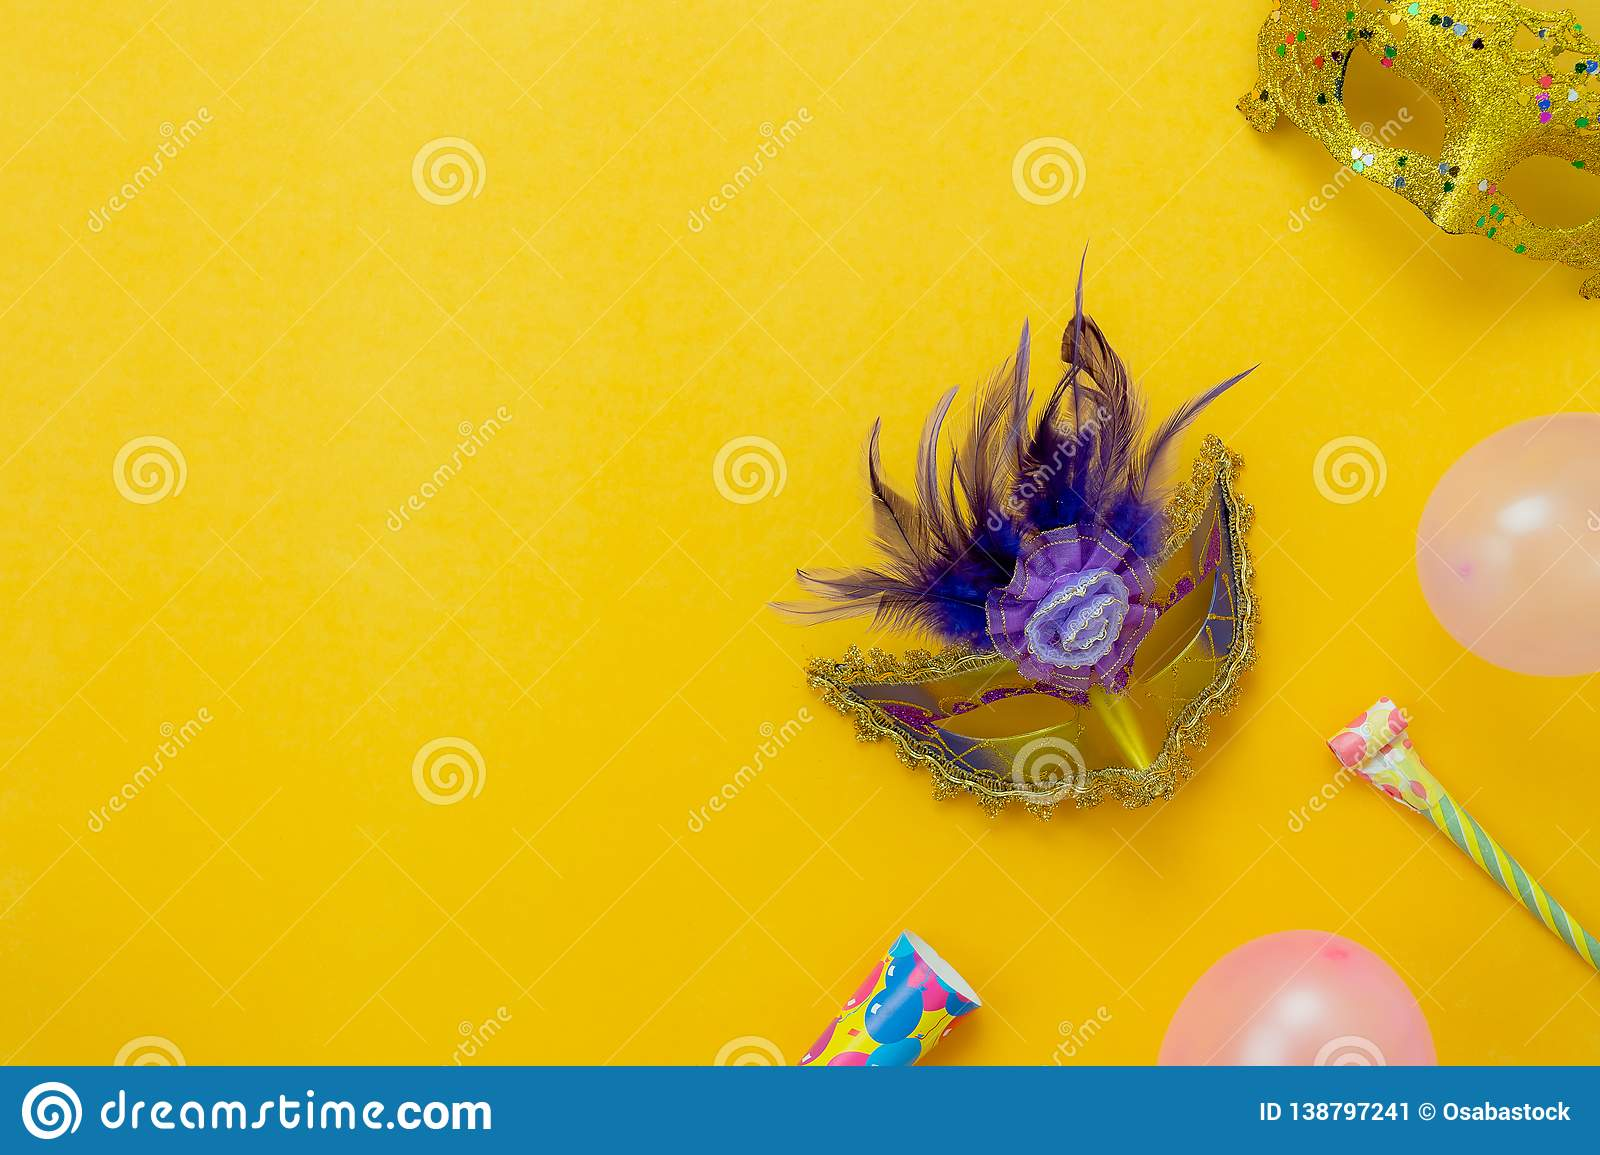 Table top view aerial image of beautiful colorful carnival season or photo booth prop Mardi Gras background.